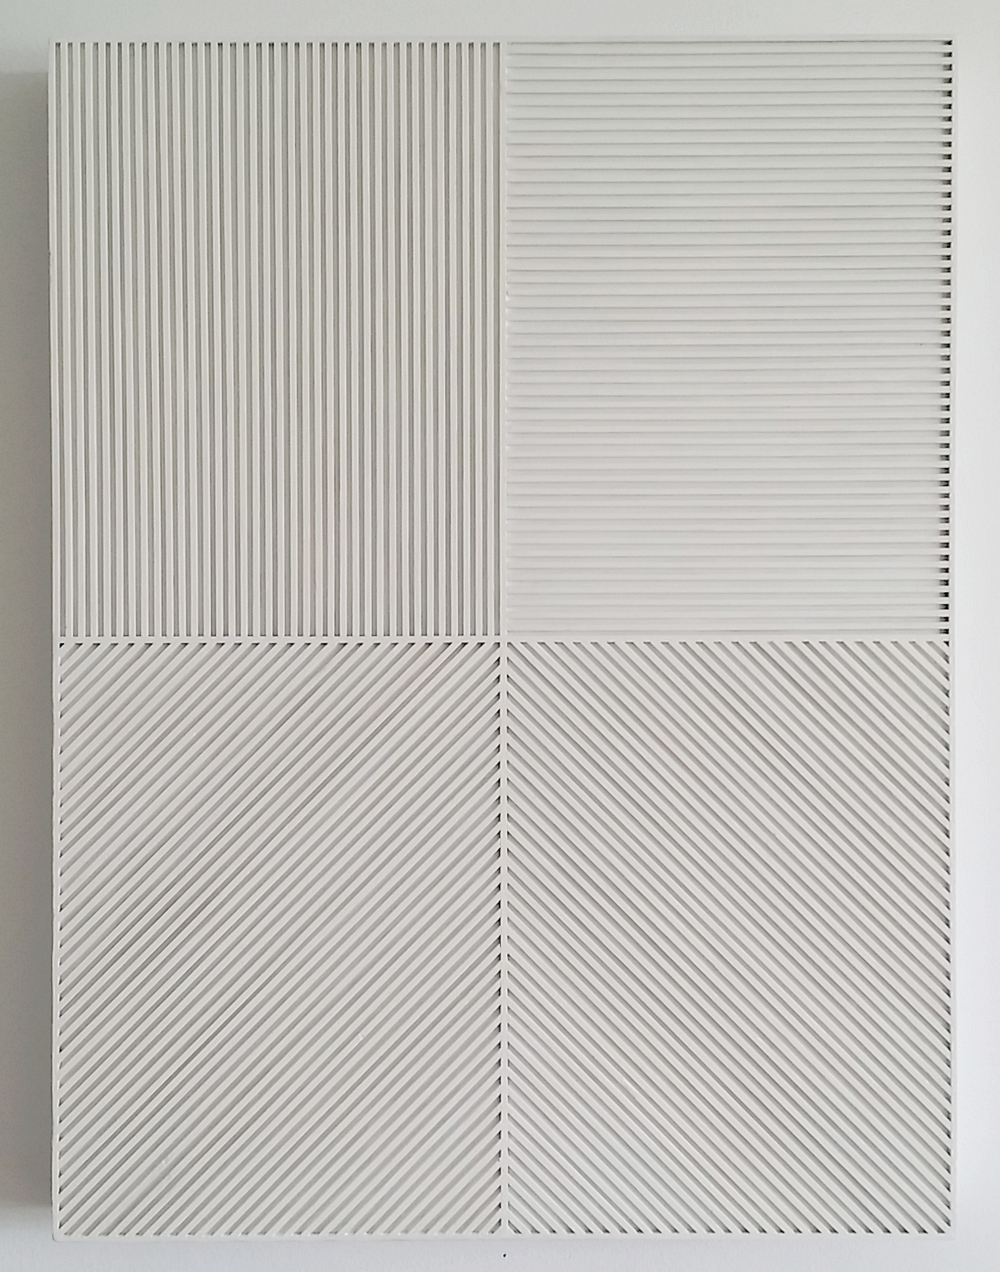 Sol LeWitt Lines in Four Direction